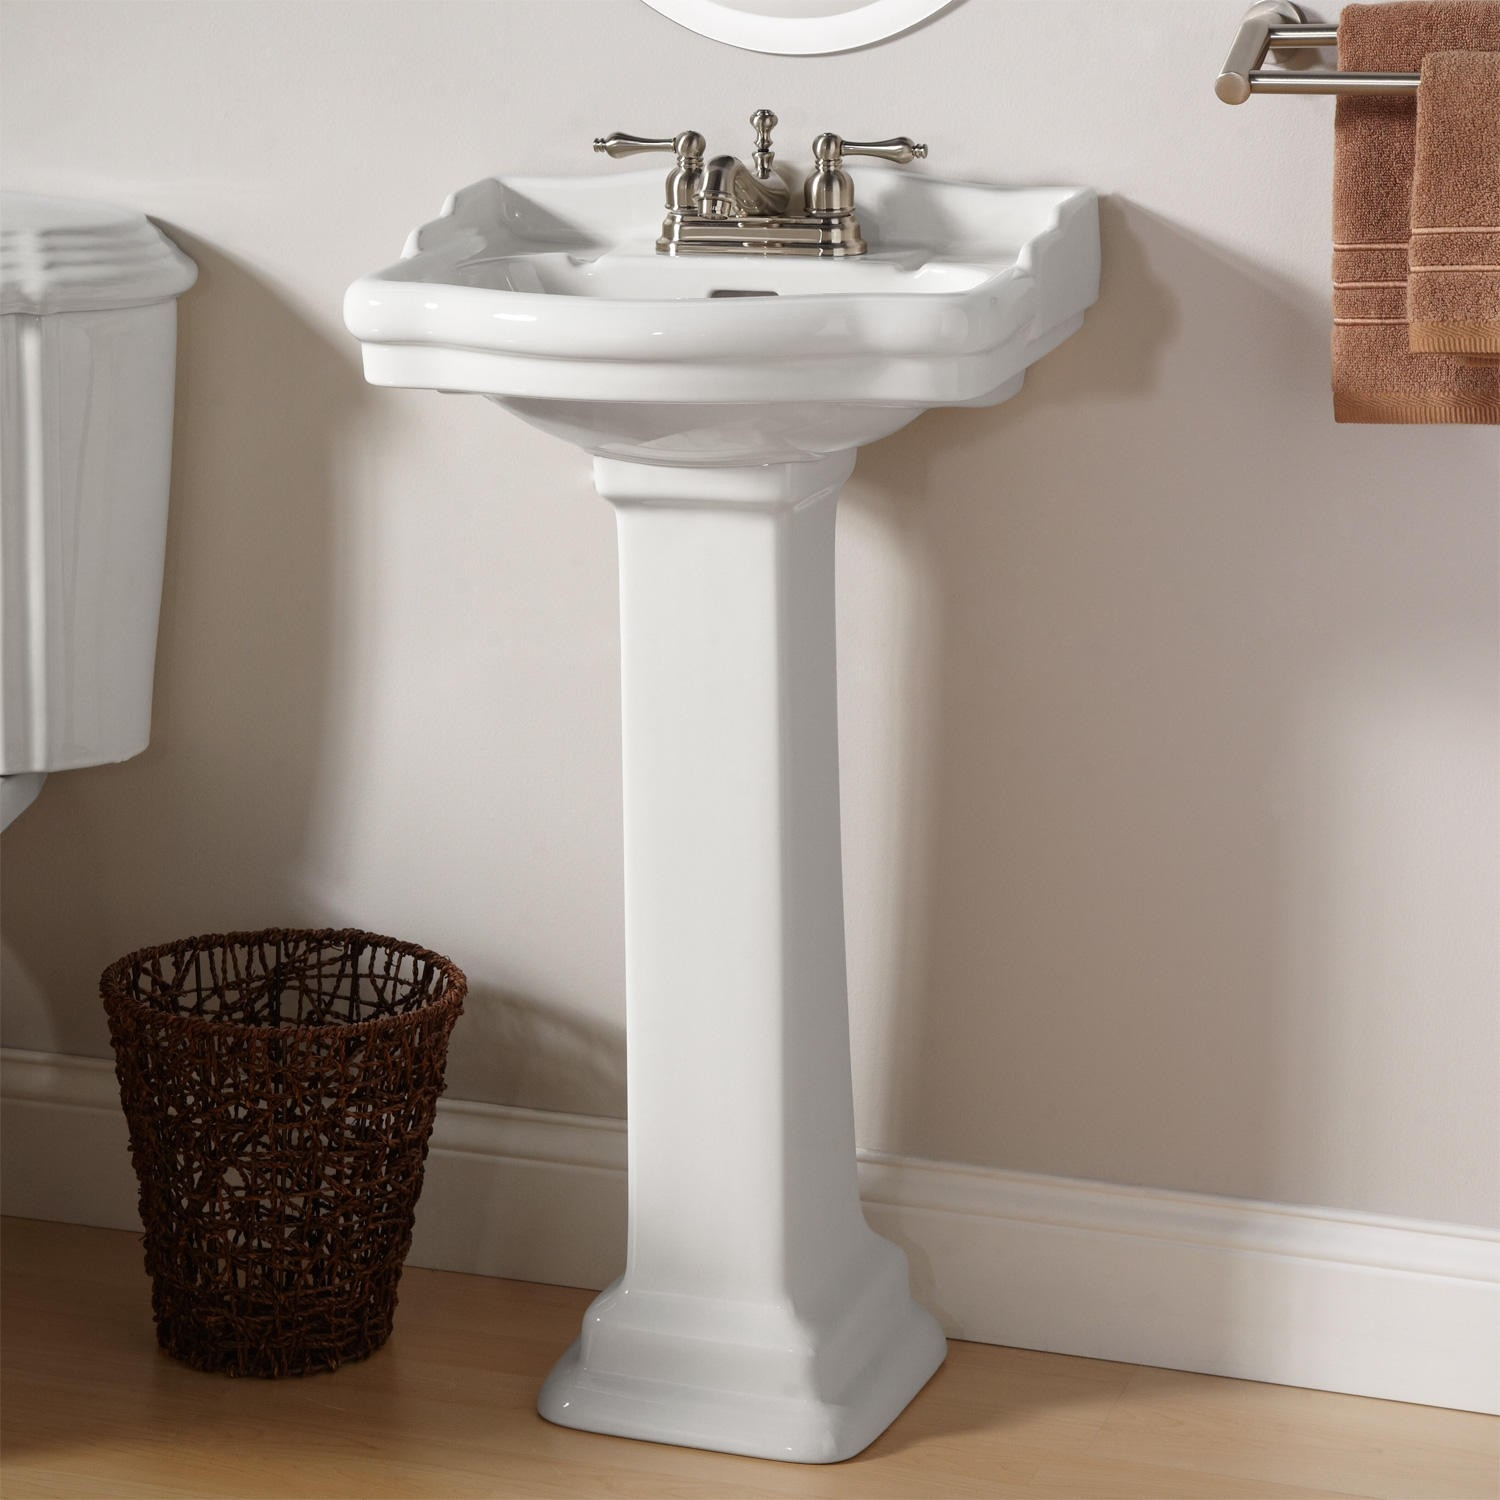 Ideas, bathroom bathroom sink pedestal faucet for pedestal sink within size 1500 x 1500  .